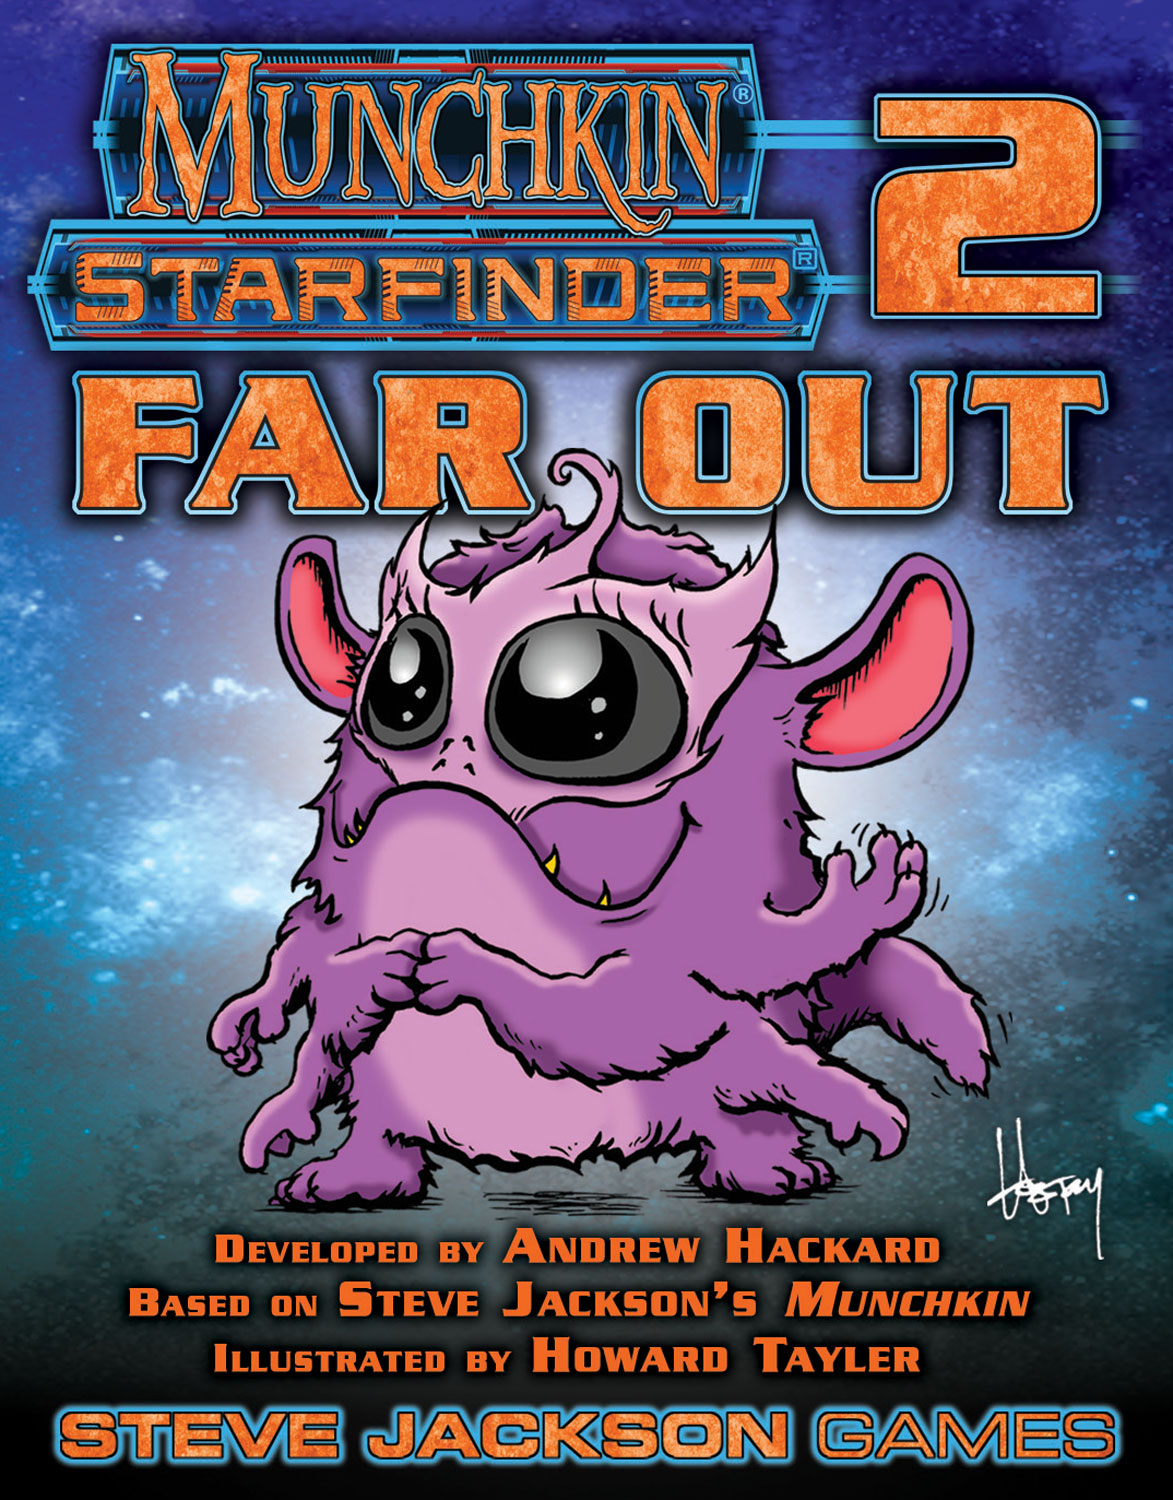 Images & Video for Munchkin: Starfinder 2: Far Out!